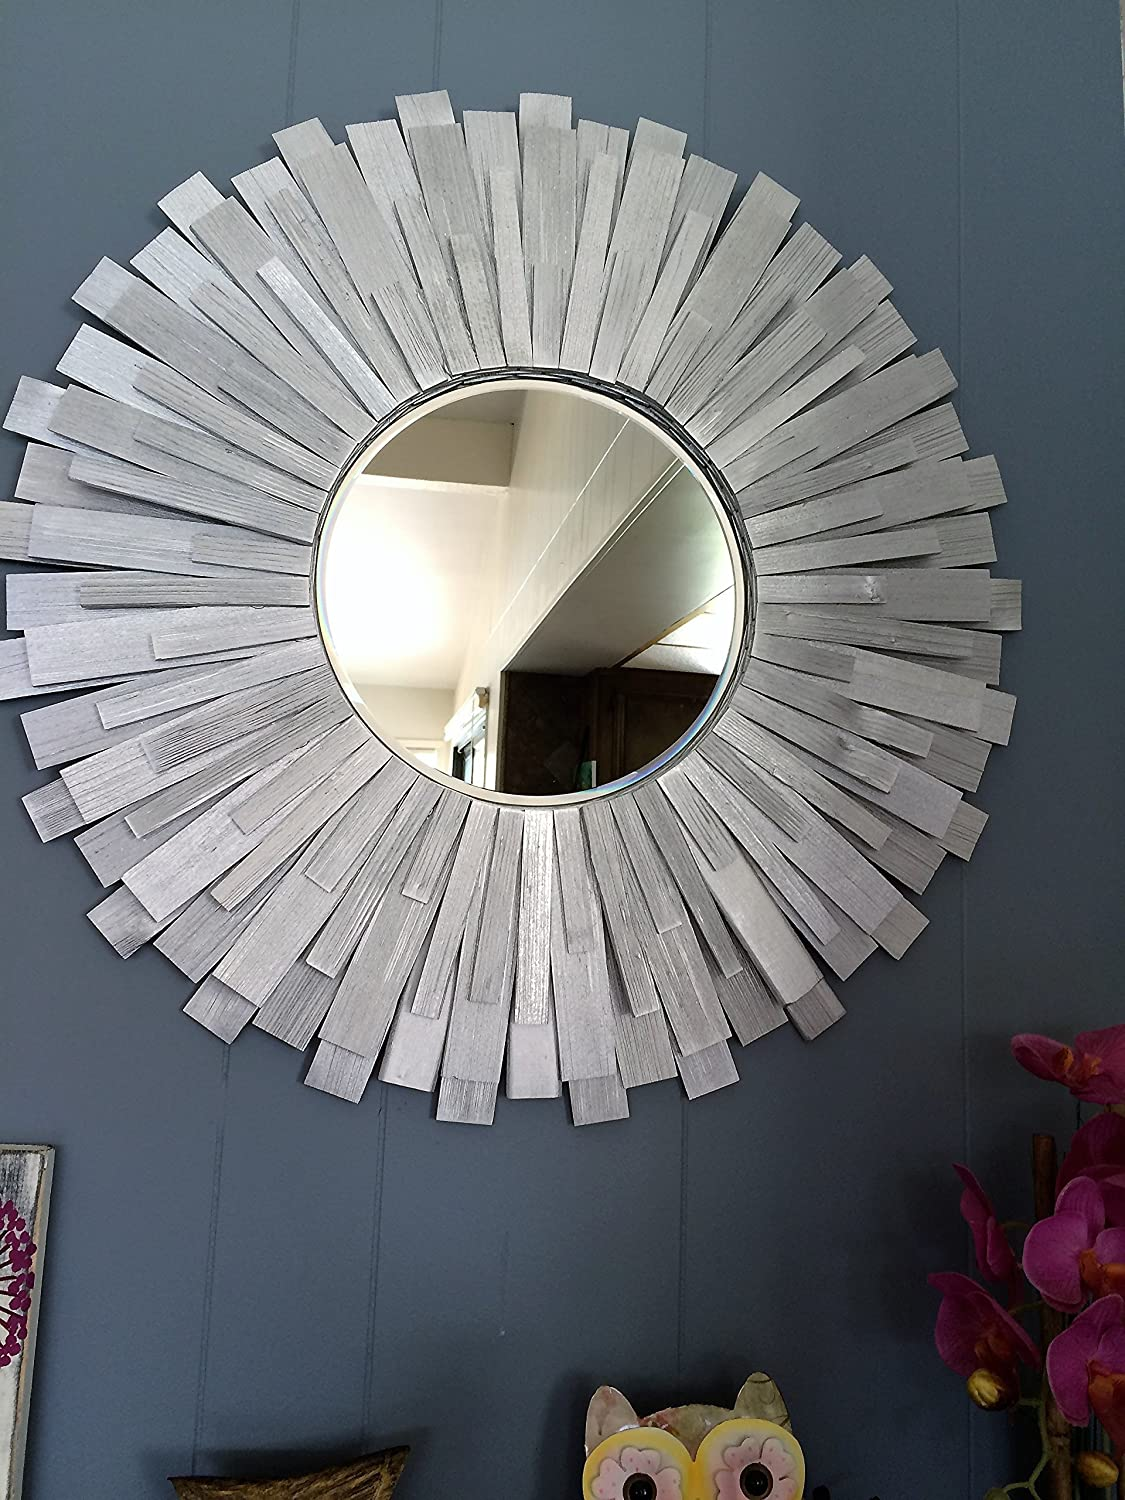 Sunburst Handmade Wall Mirror 24'' Silver wood frame